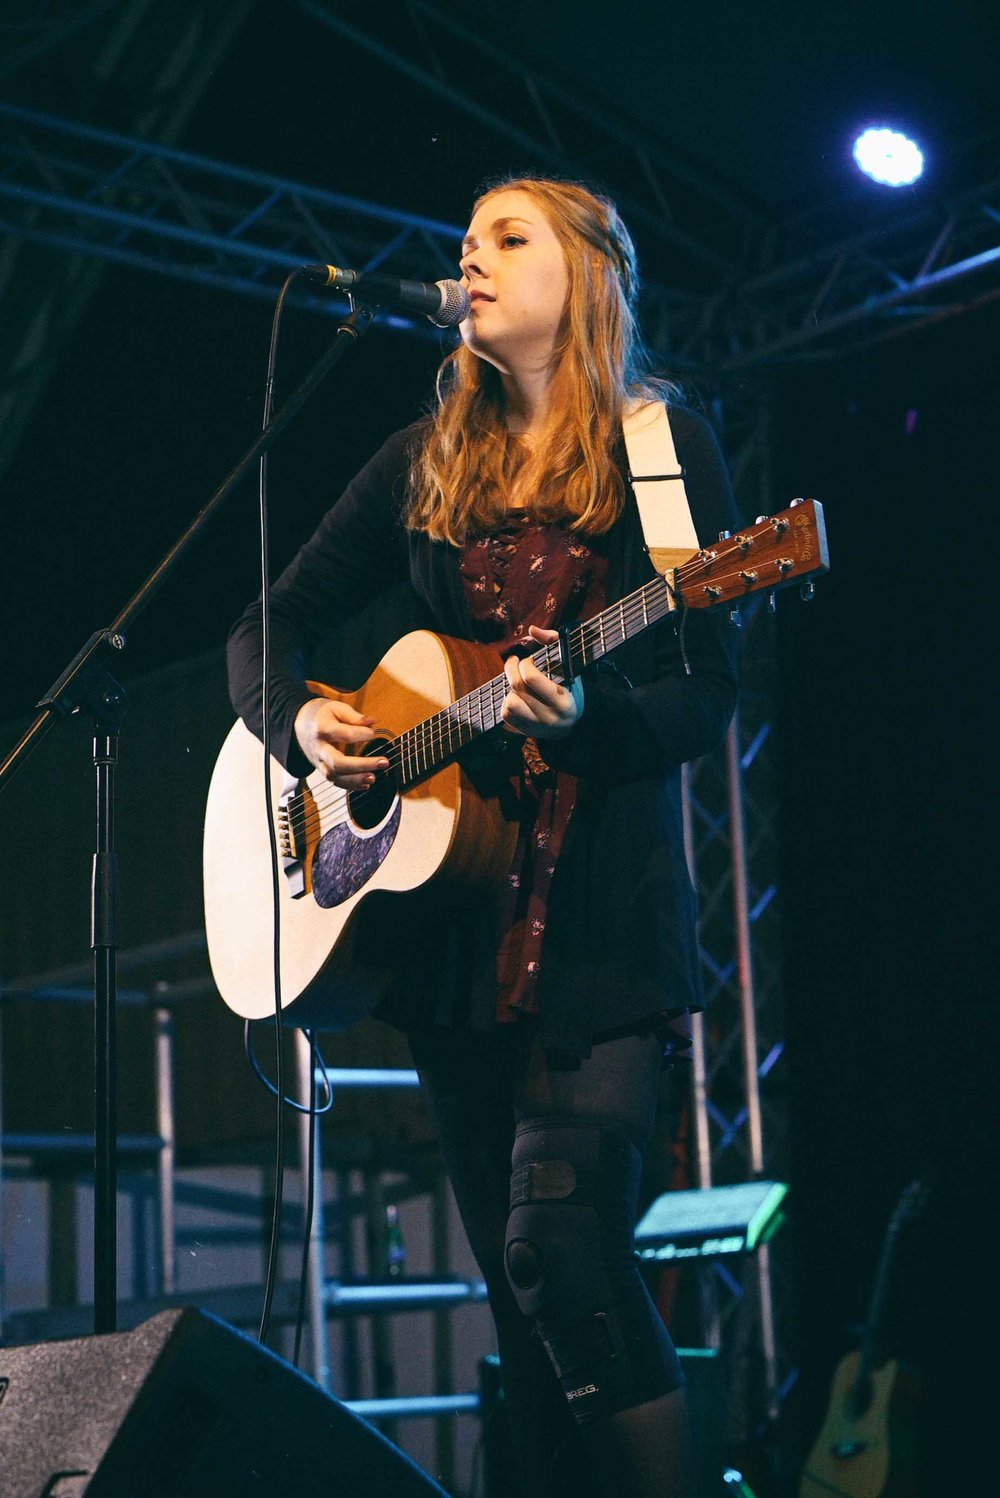 Kaitlyn Martin at NightQuarter 2018